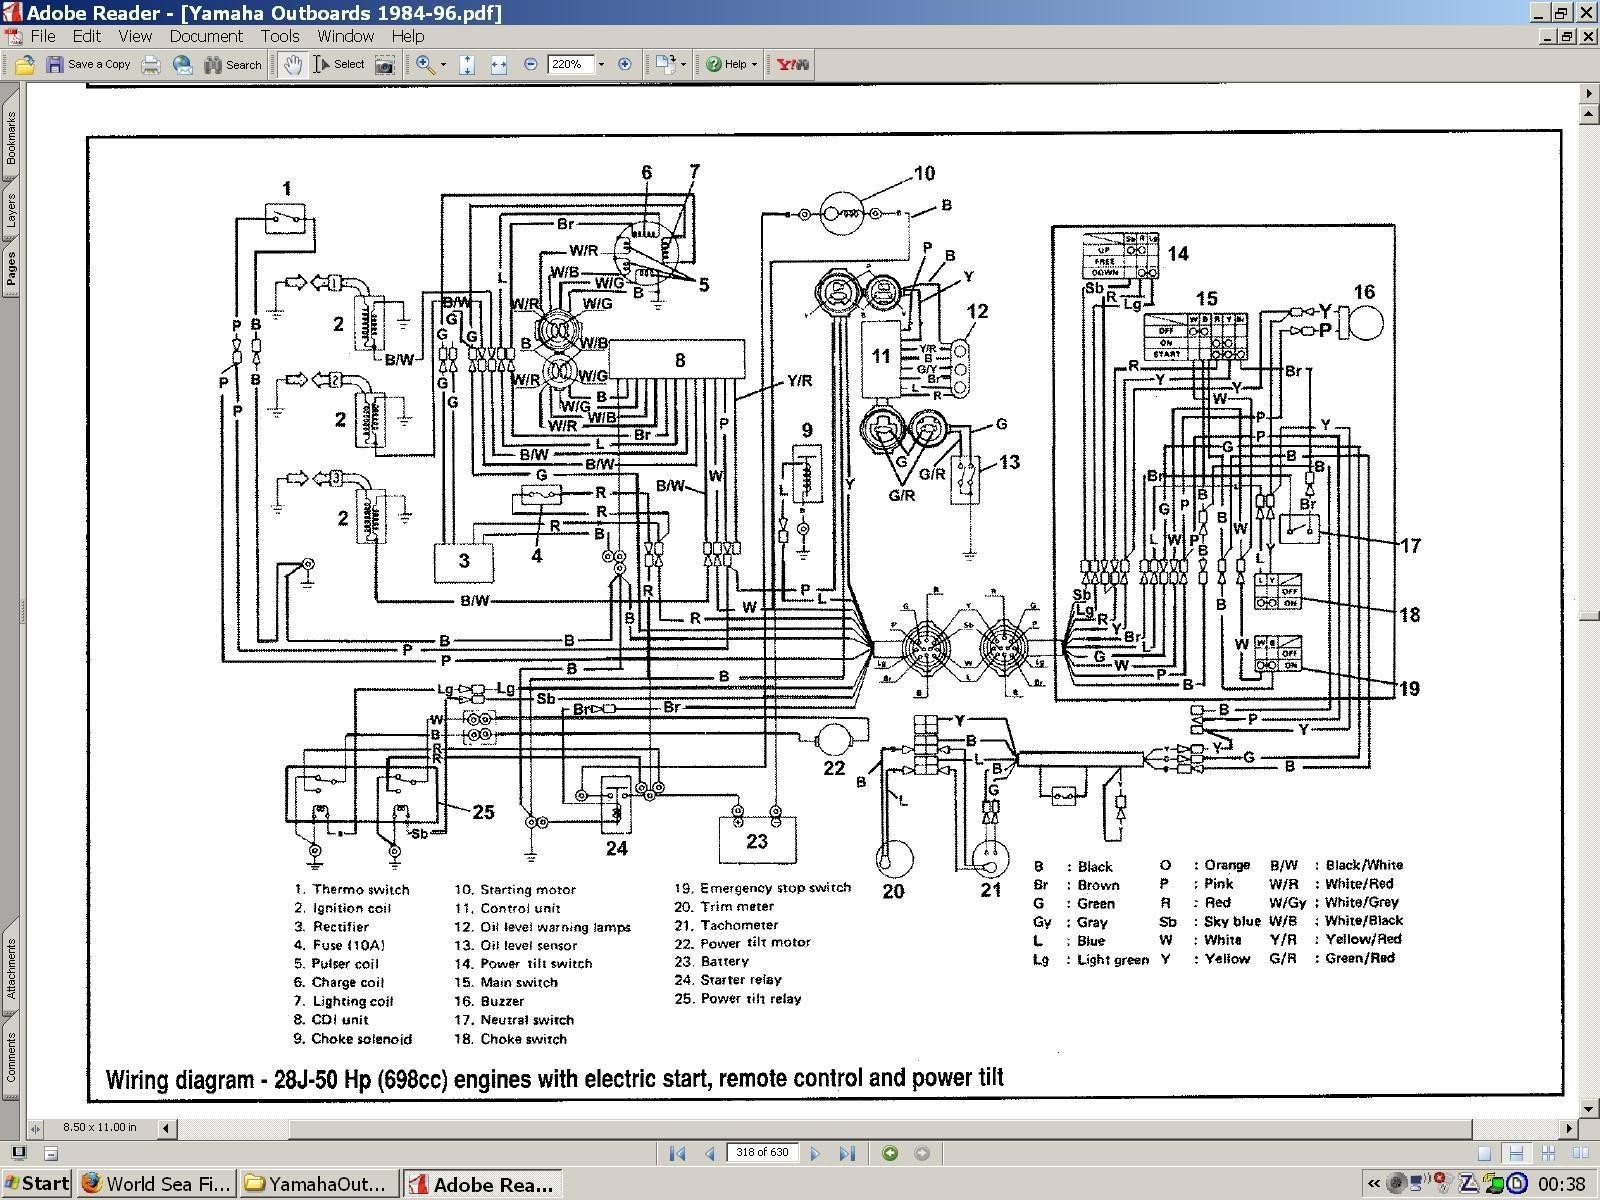 Yamaha 250 Outboard Wiring - Technical Diagrams on